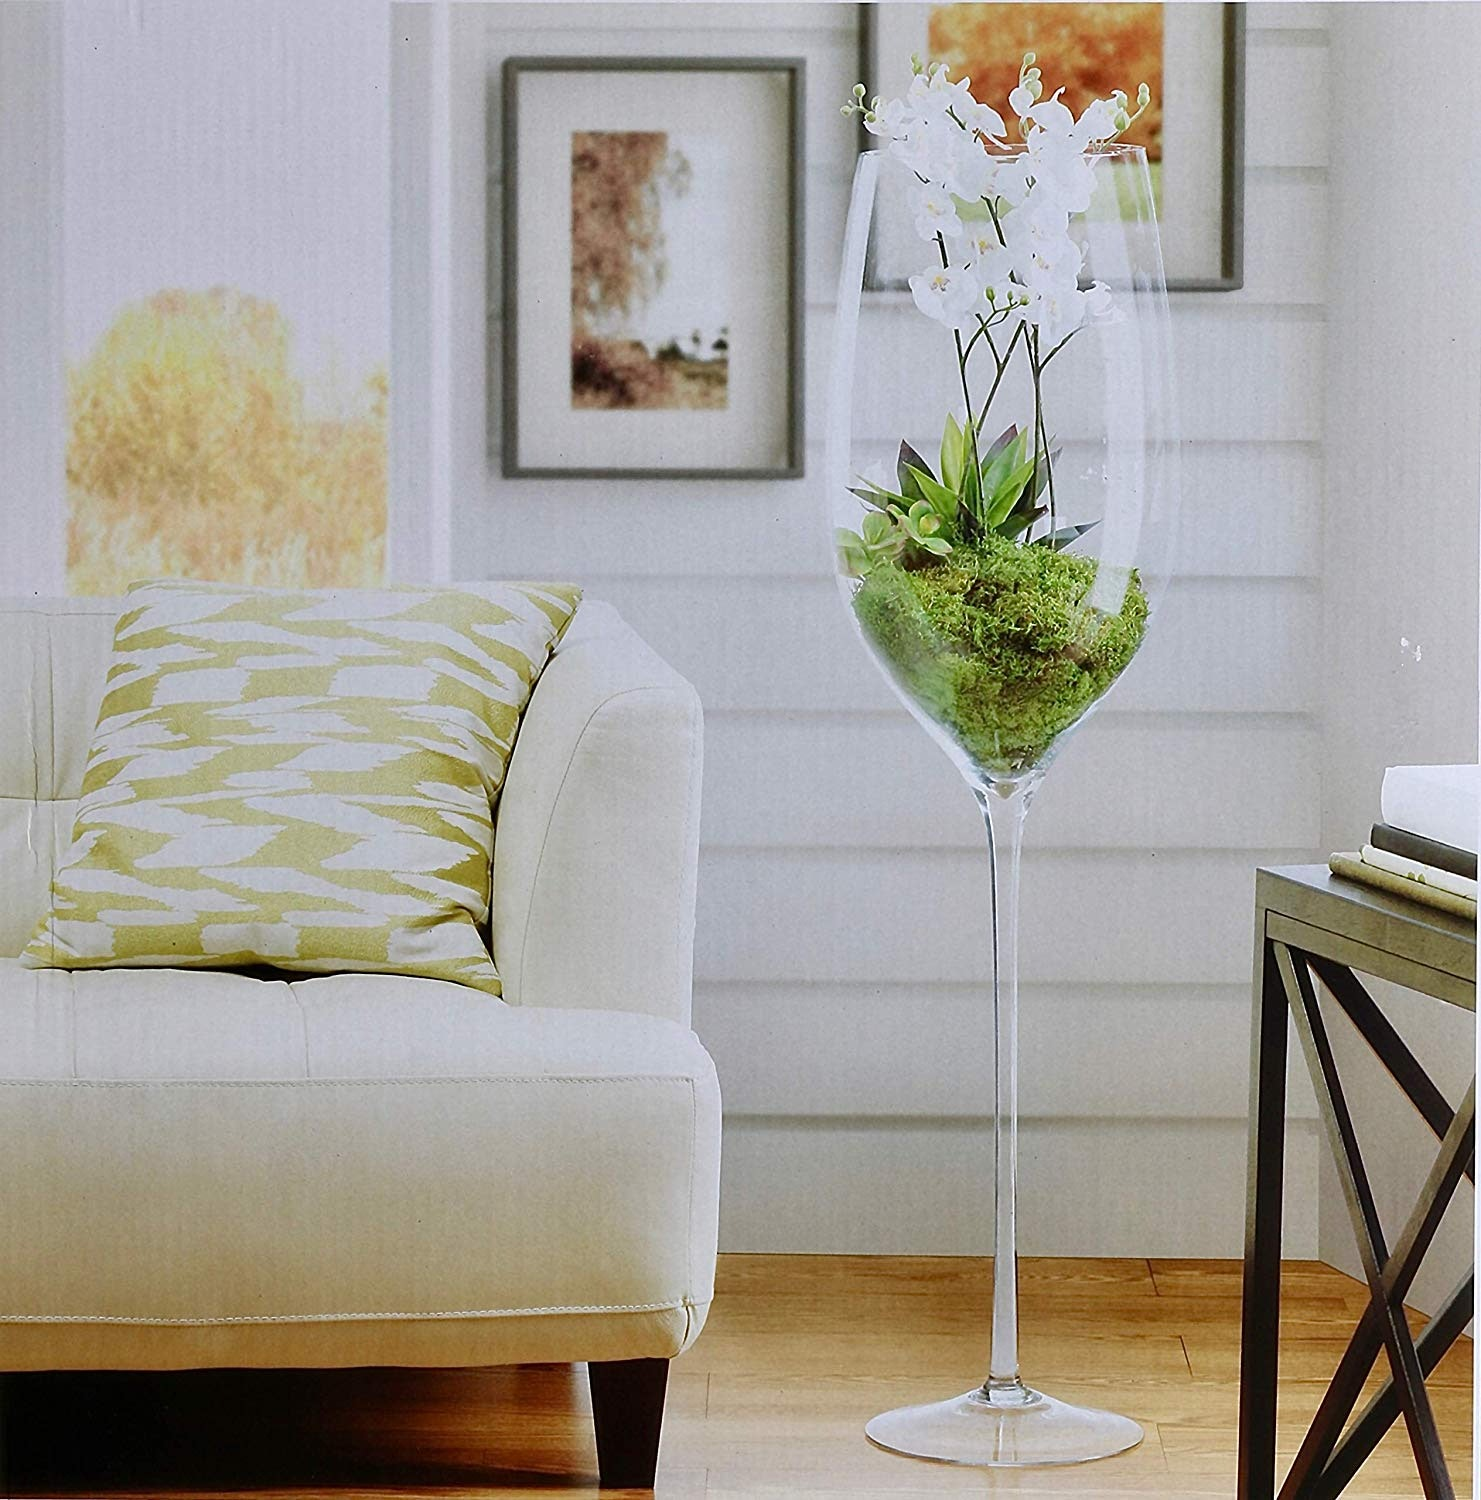 Costcos Four Foot Fall Decorative Wine Glass Has Gotten A Lot Of